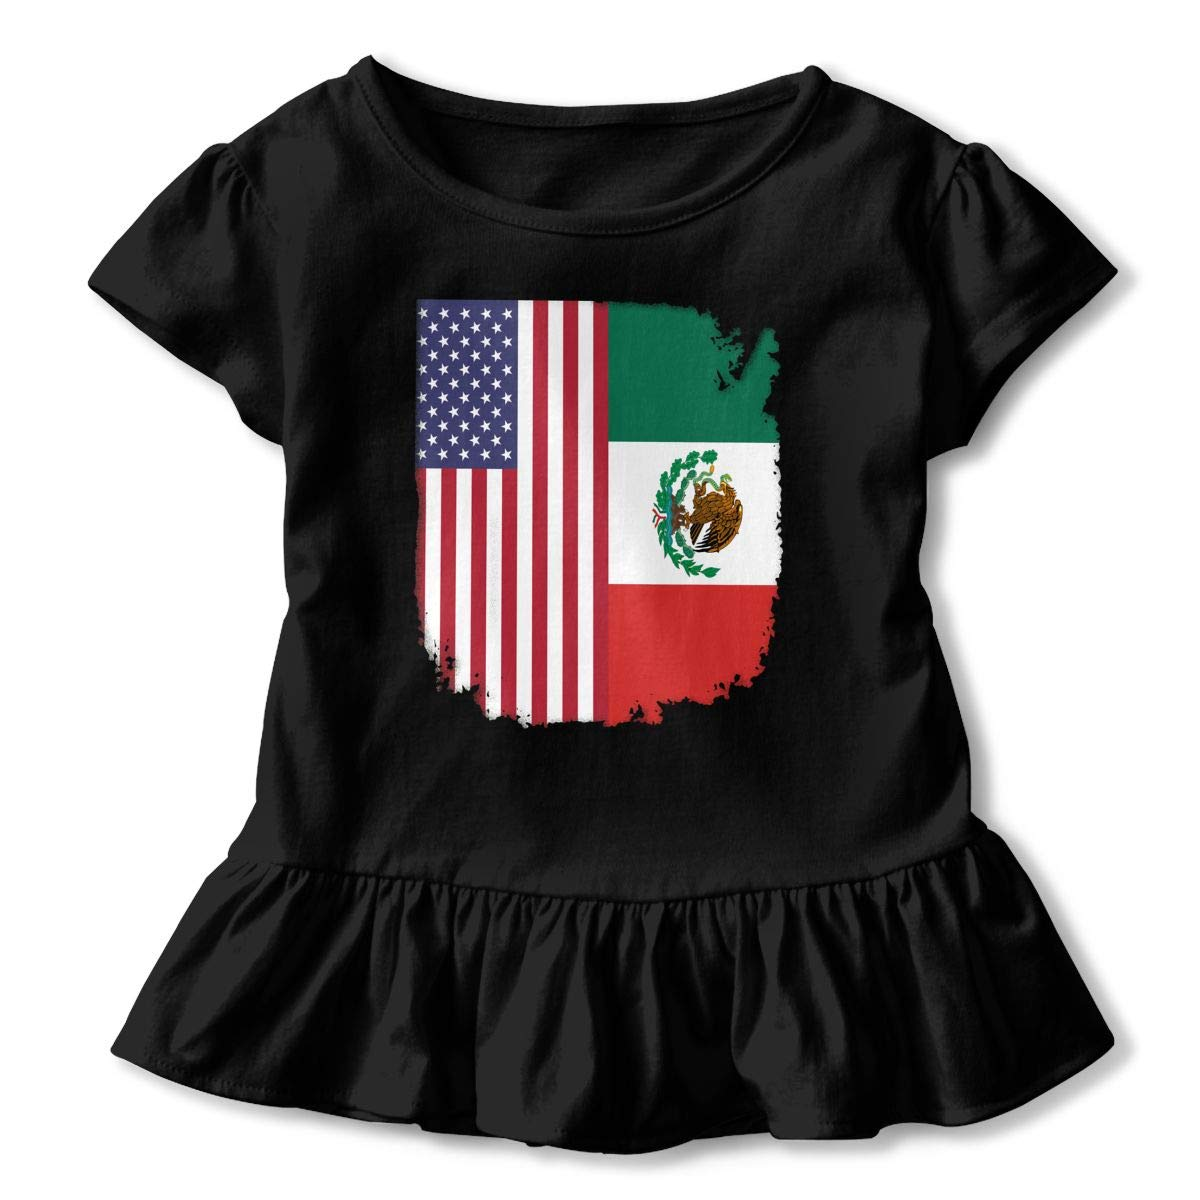 SHIRT1-KIDS Mexican American Flag Childrens Girls Short Sleeve Ruffles Shirt T-Shirt for 2-6 Toddlers